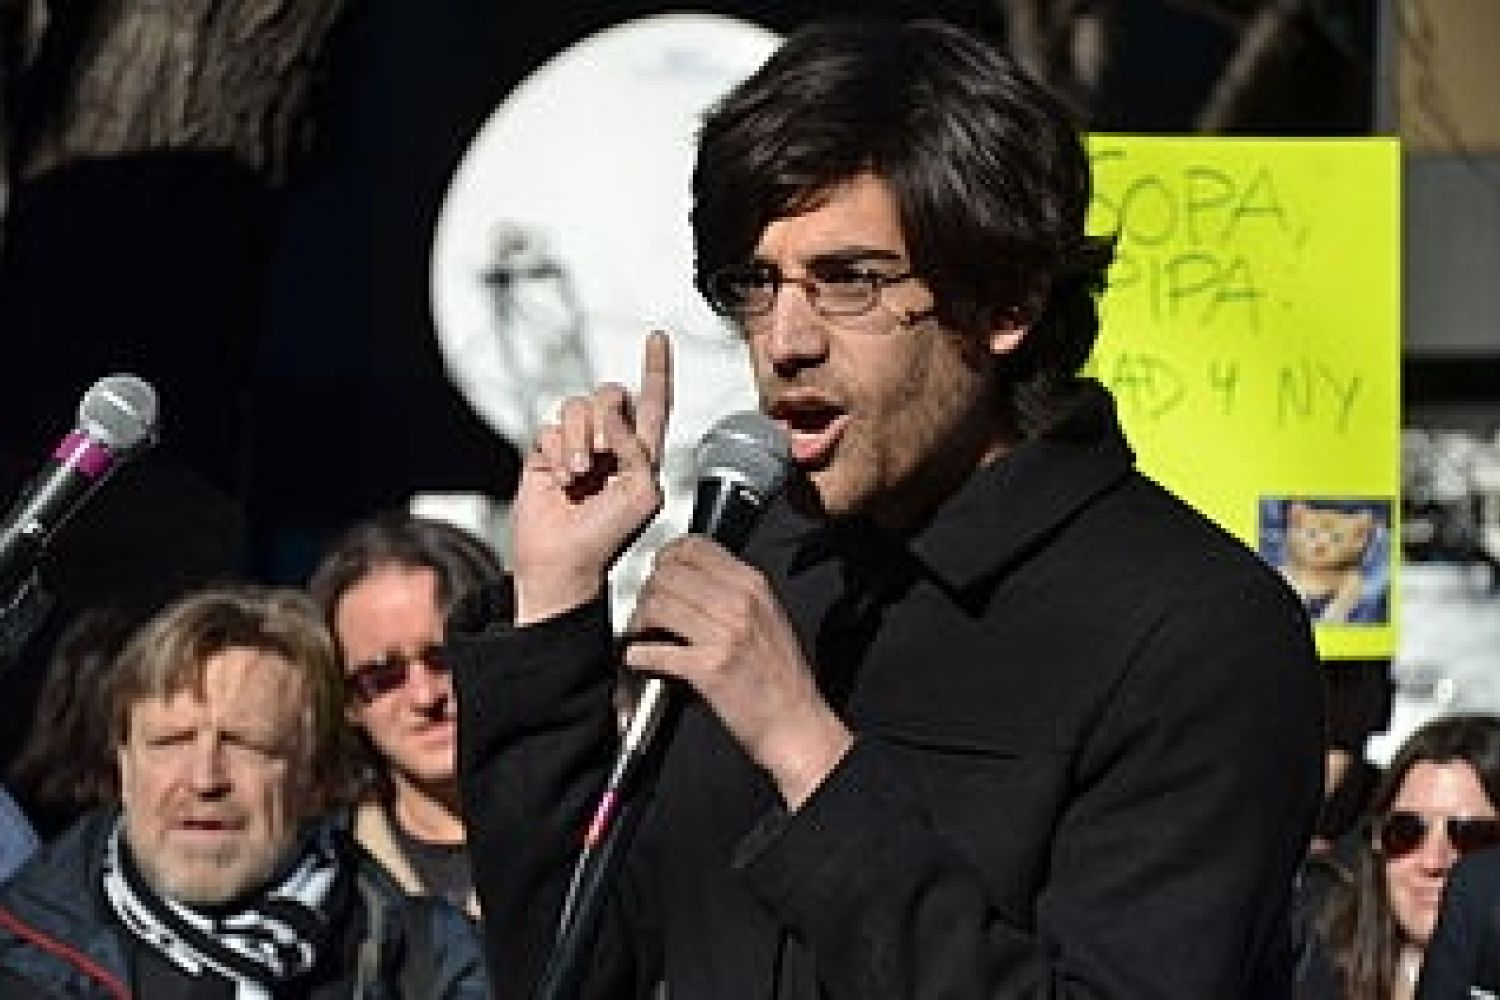 Aaron Swartz: Belief in Change